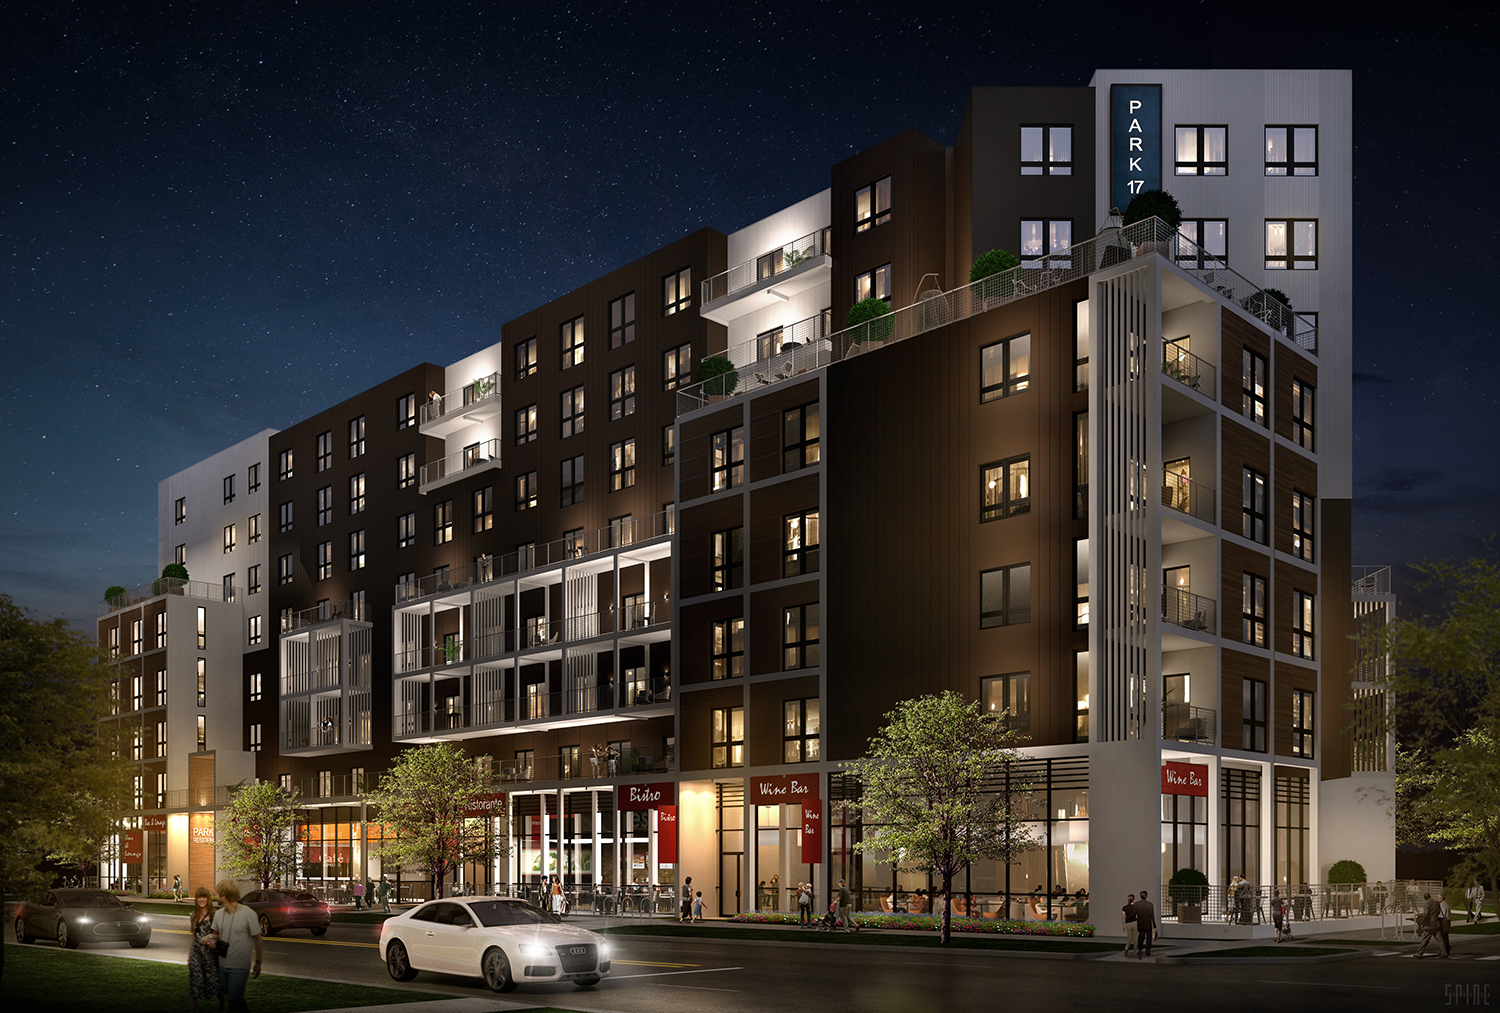 Night rendering of Park & 17th, Denver, CO